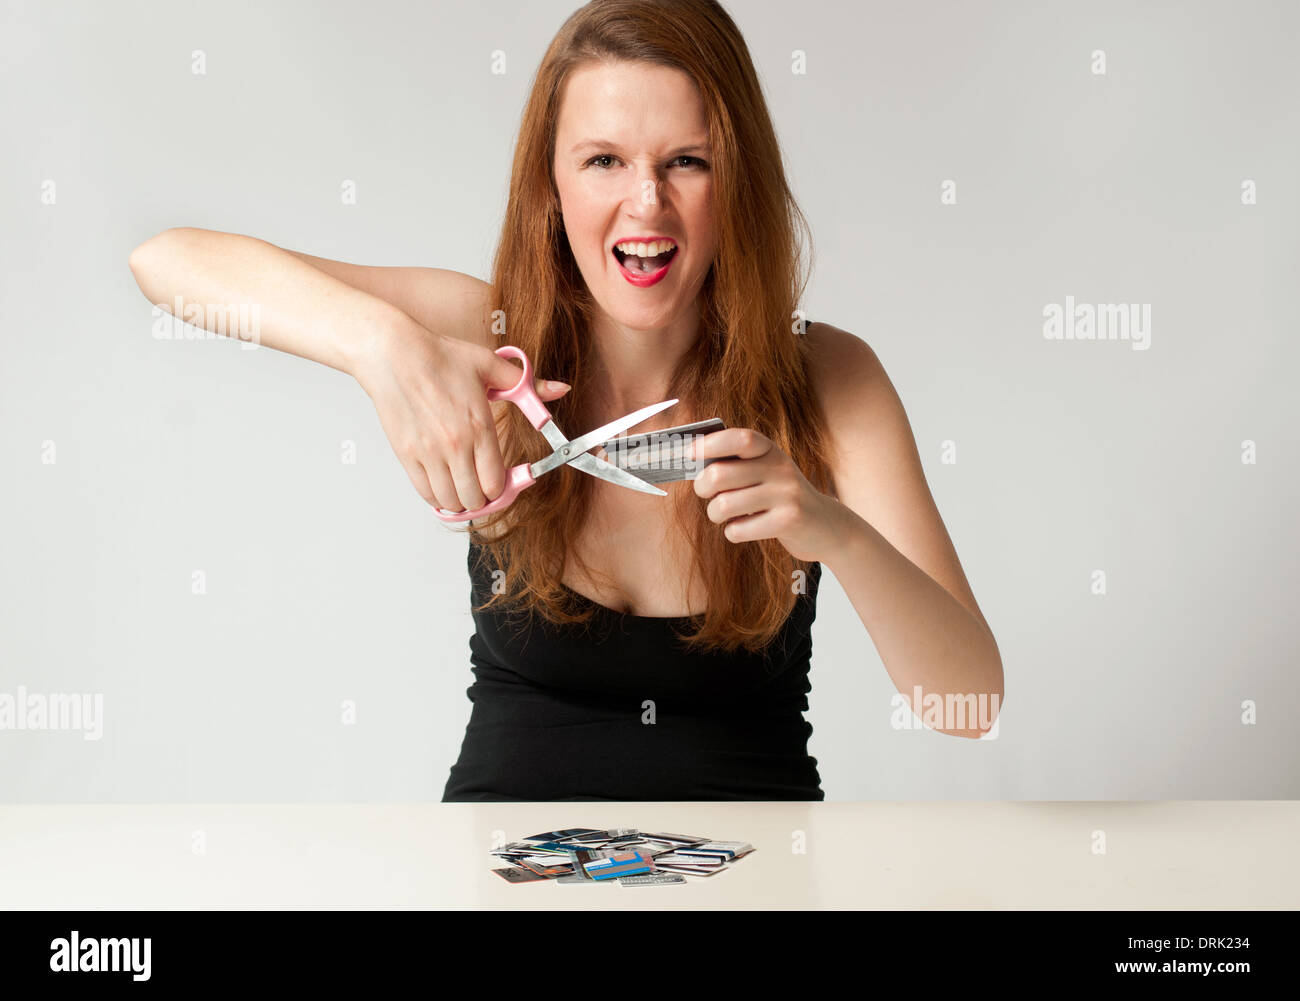 Woman cutting up credit card, a personal financial freedom debt free concept - Stock Image